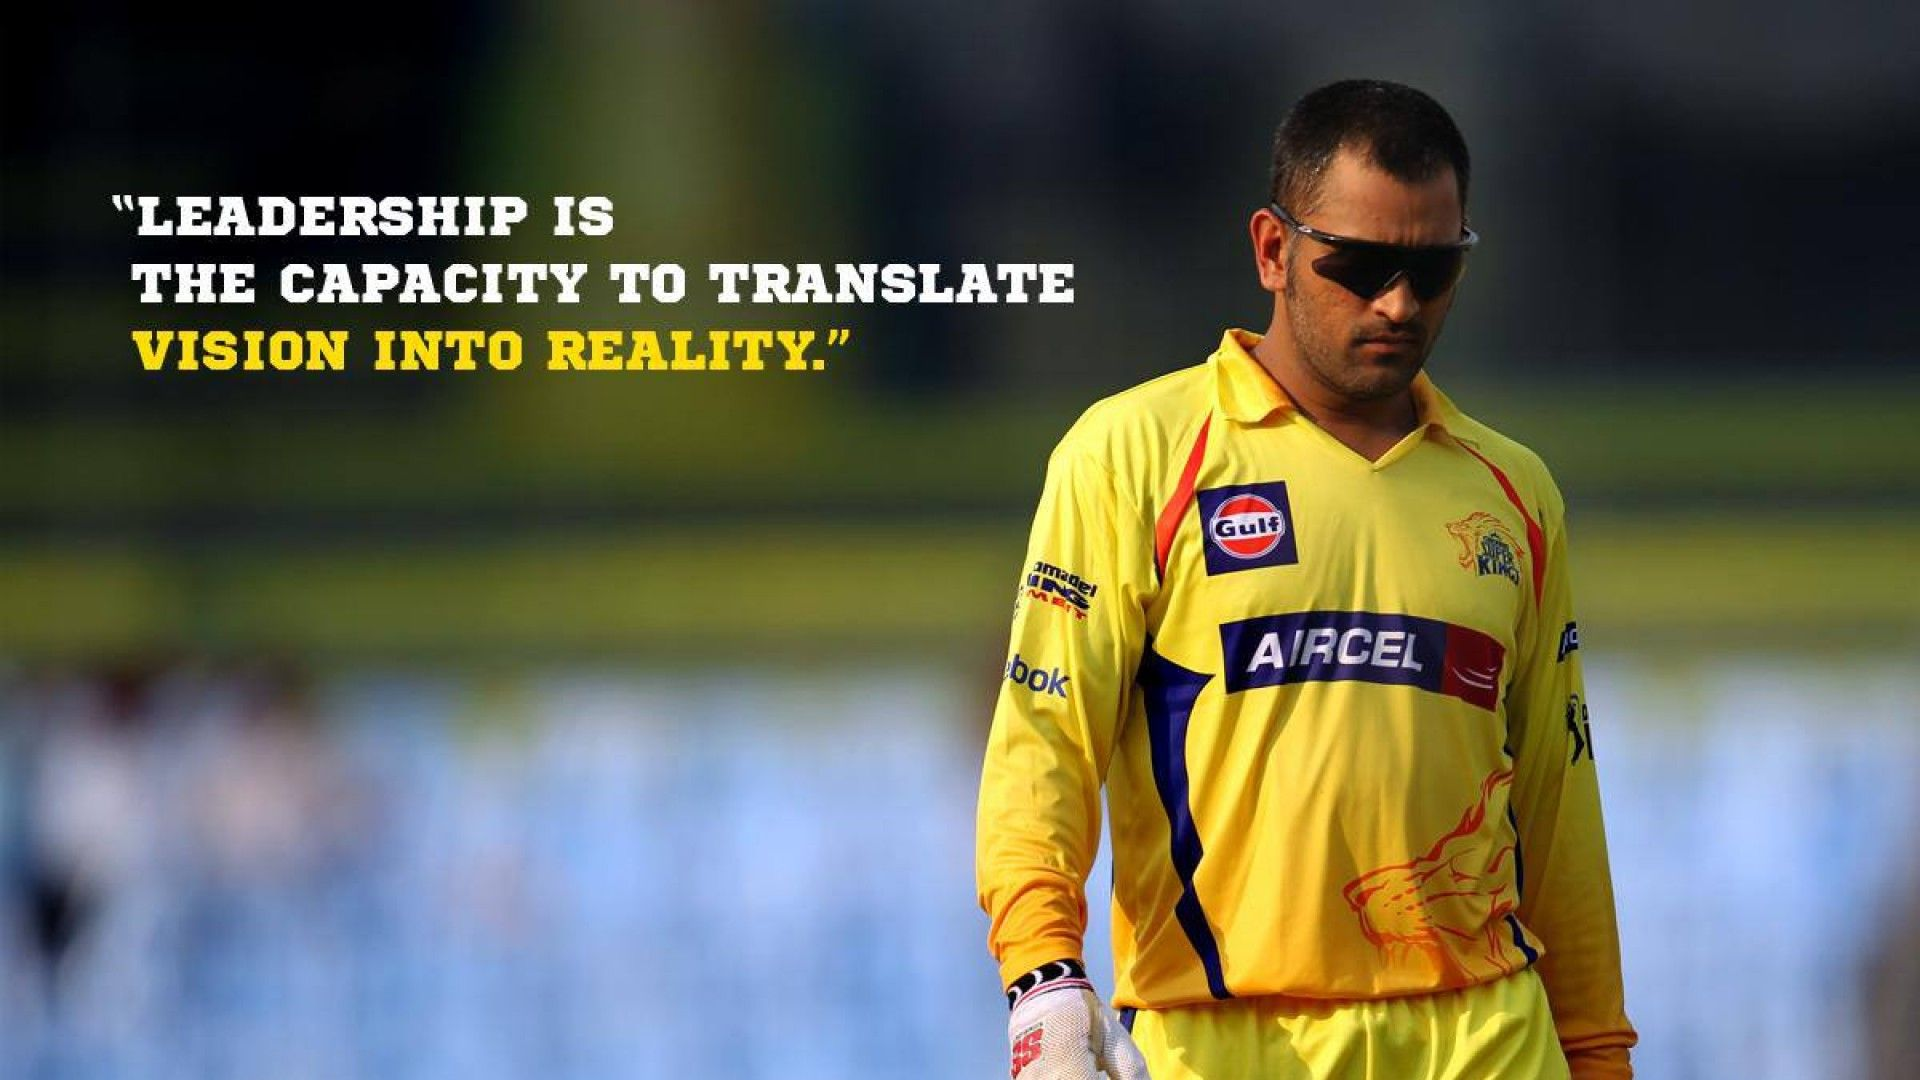 Dhoni Csk Wallpapers Hd: Top Mahendra Singh Dhoni Hd Wallpapers Images And Latest